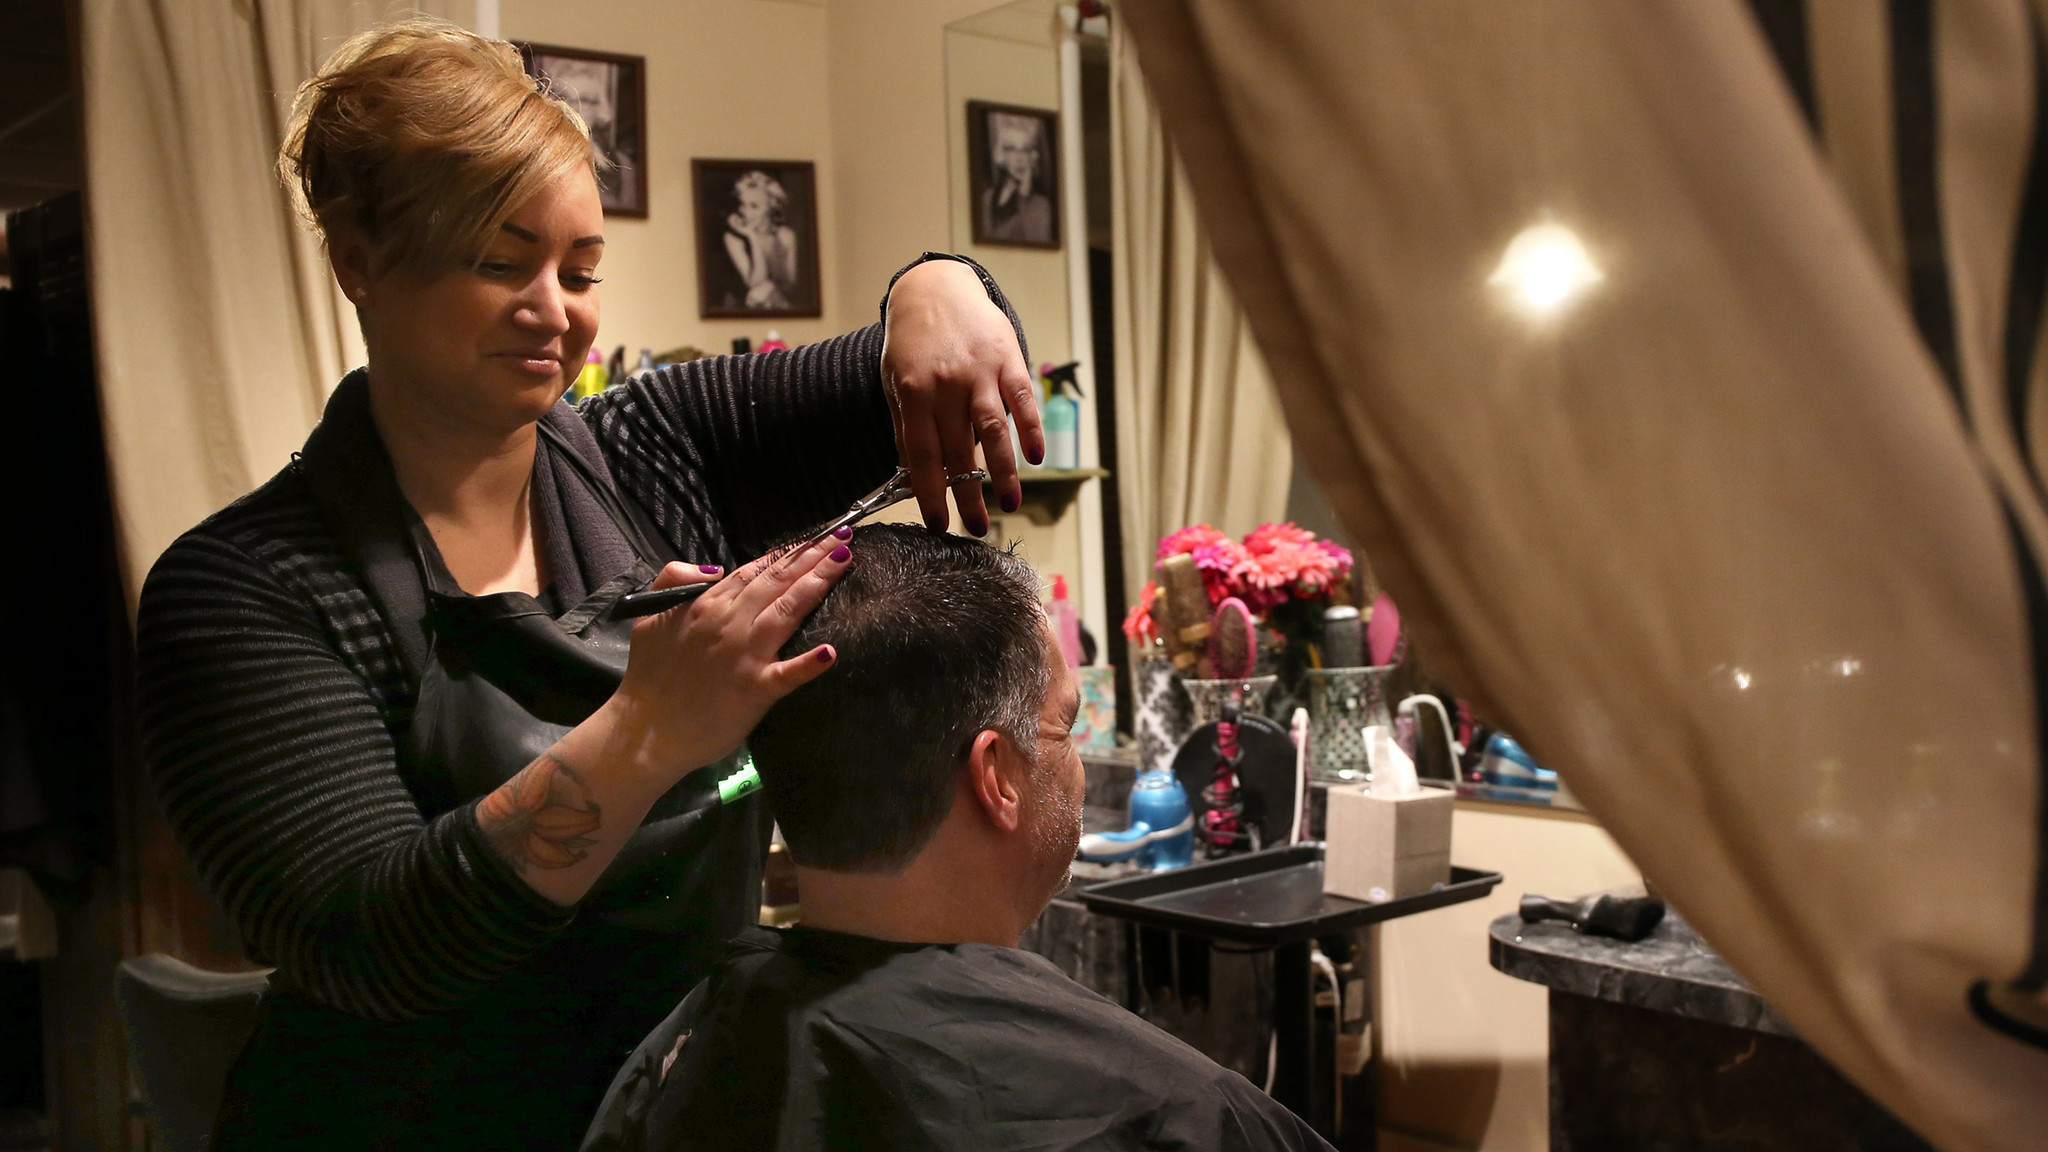 New rule requires Illinois hairstylists to watch for domestic violence - Chicago Tribune